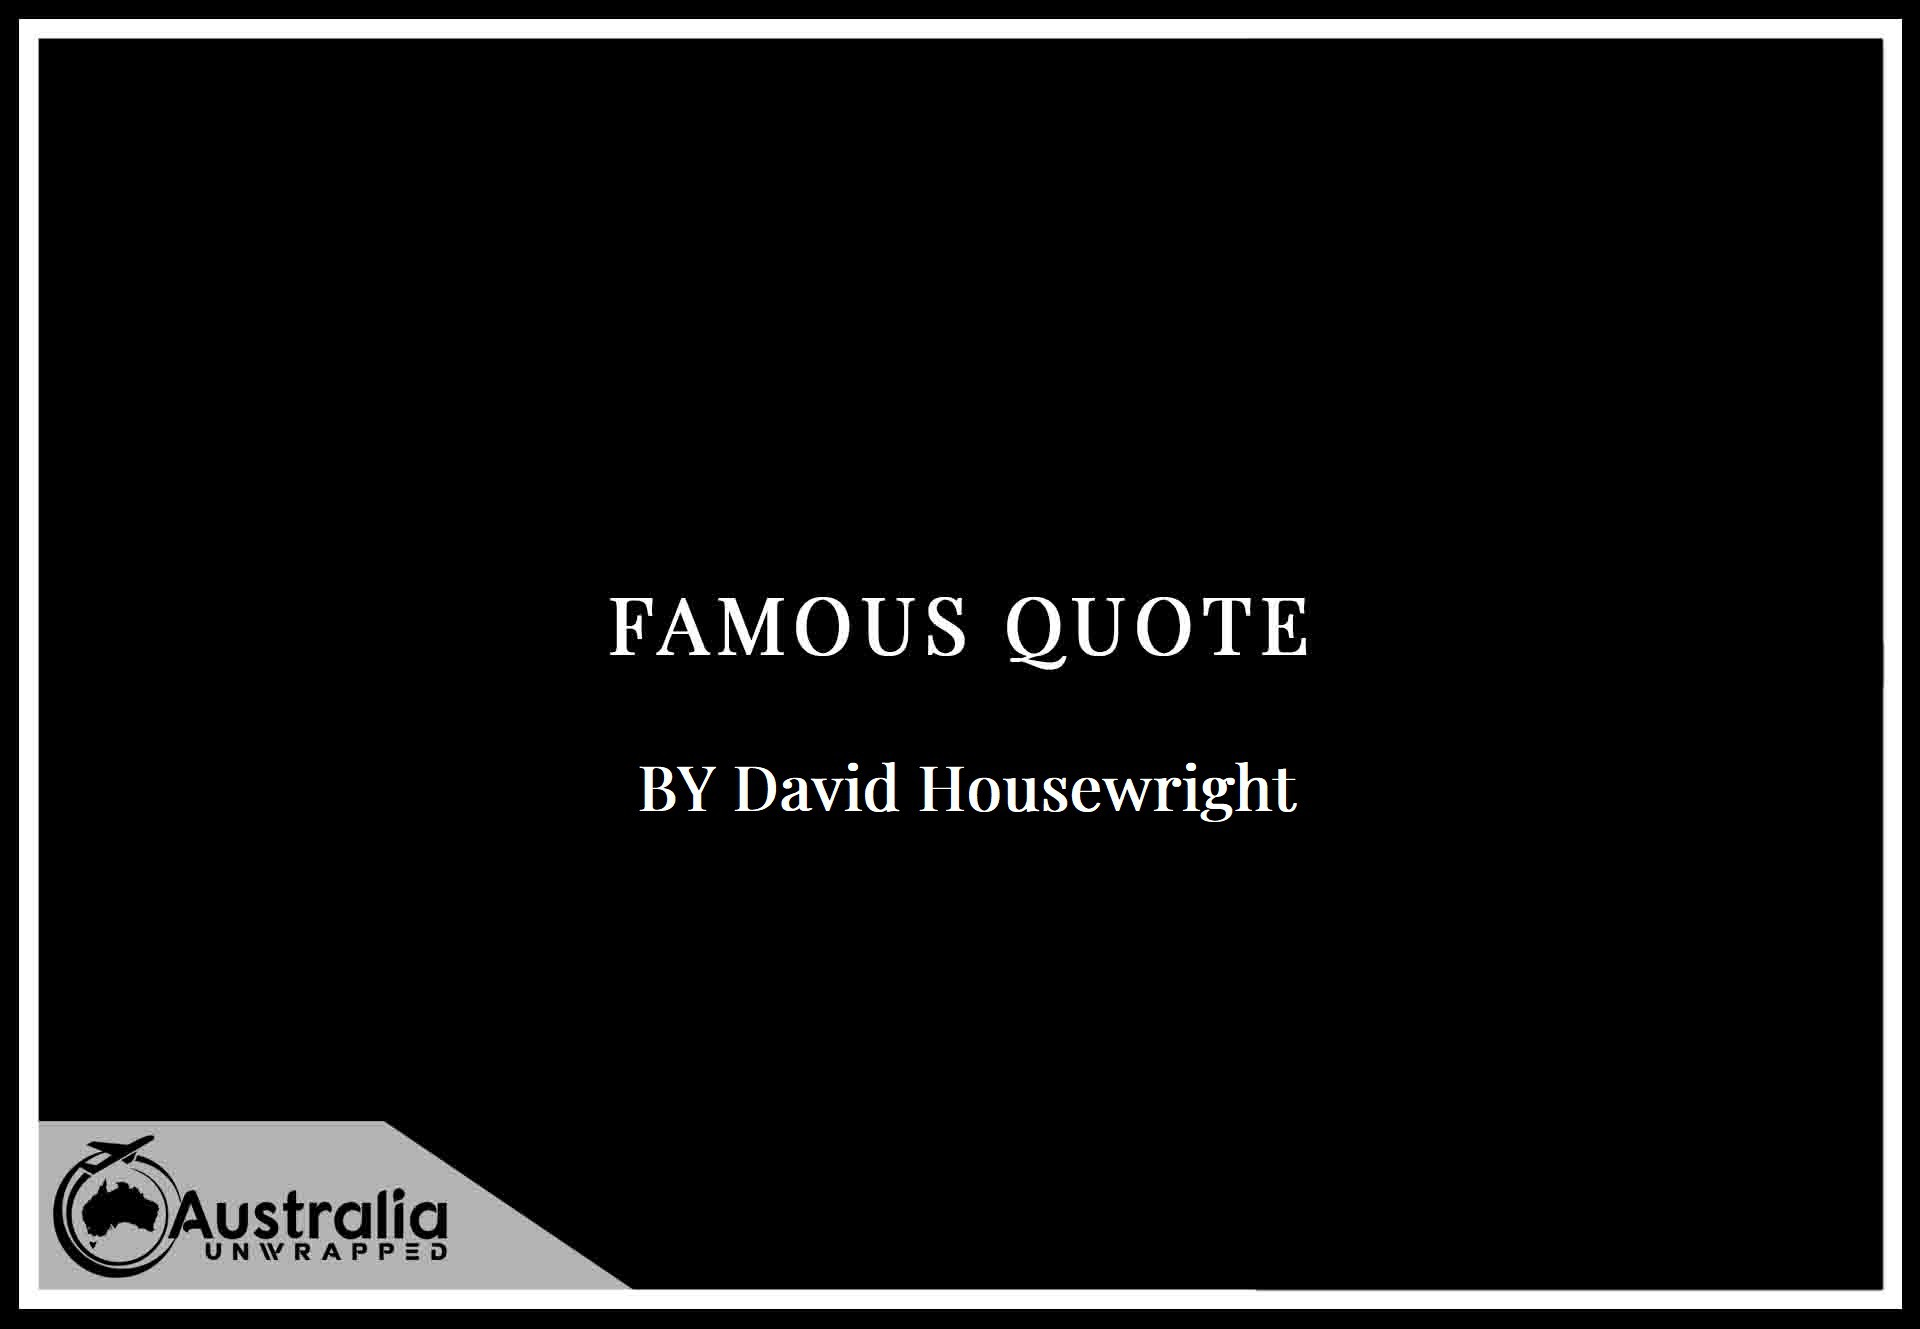 David Housewright's Top 1 Popular and Famous Quotes